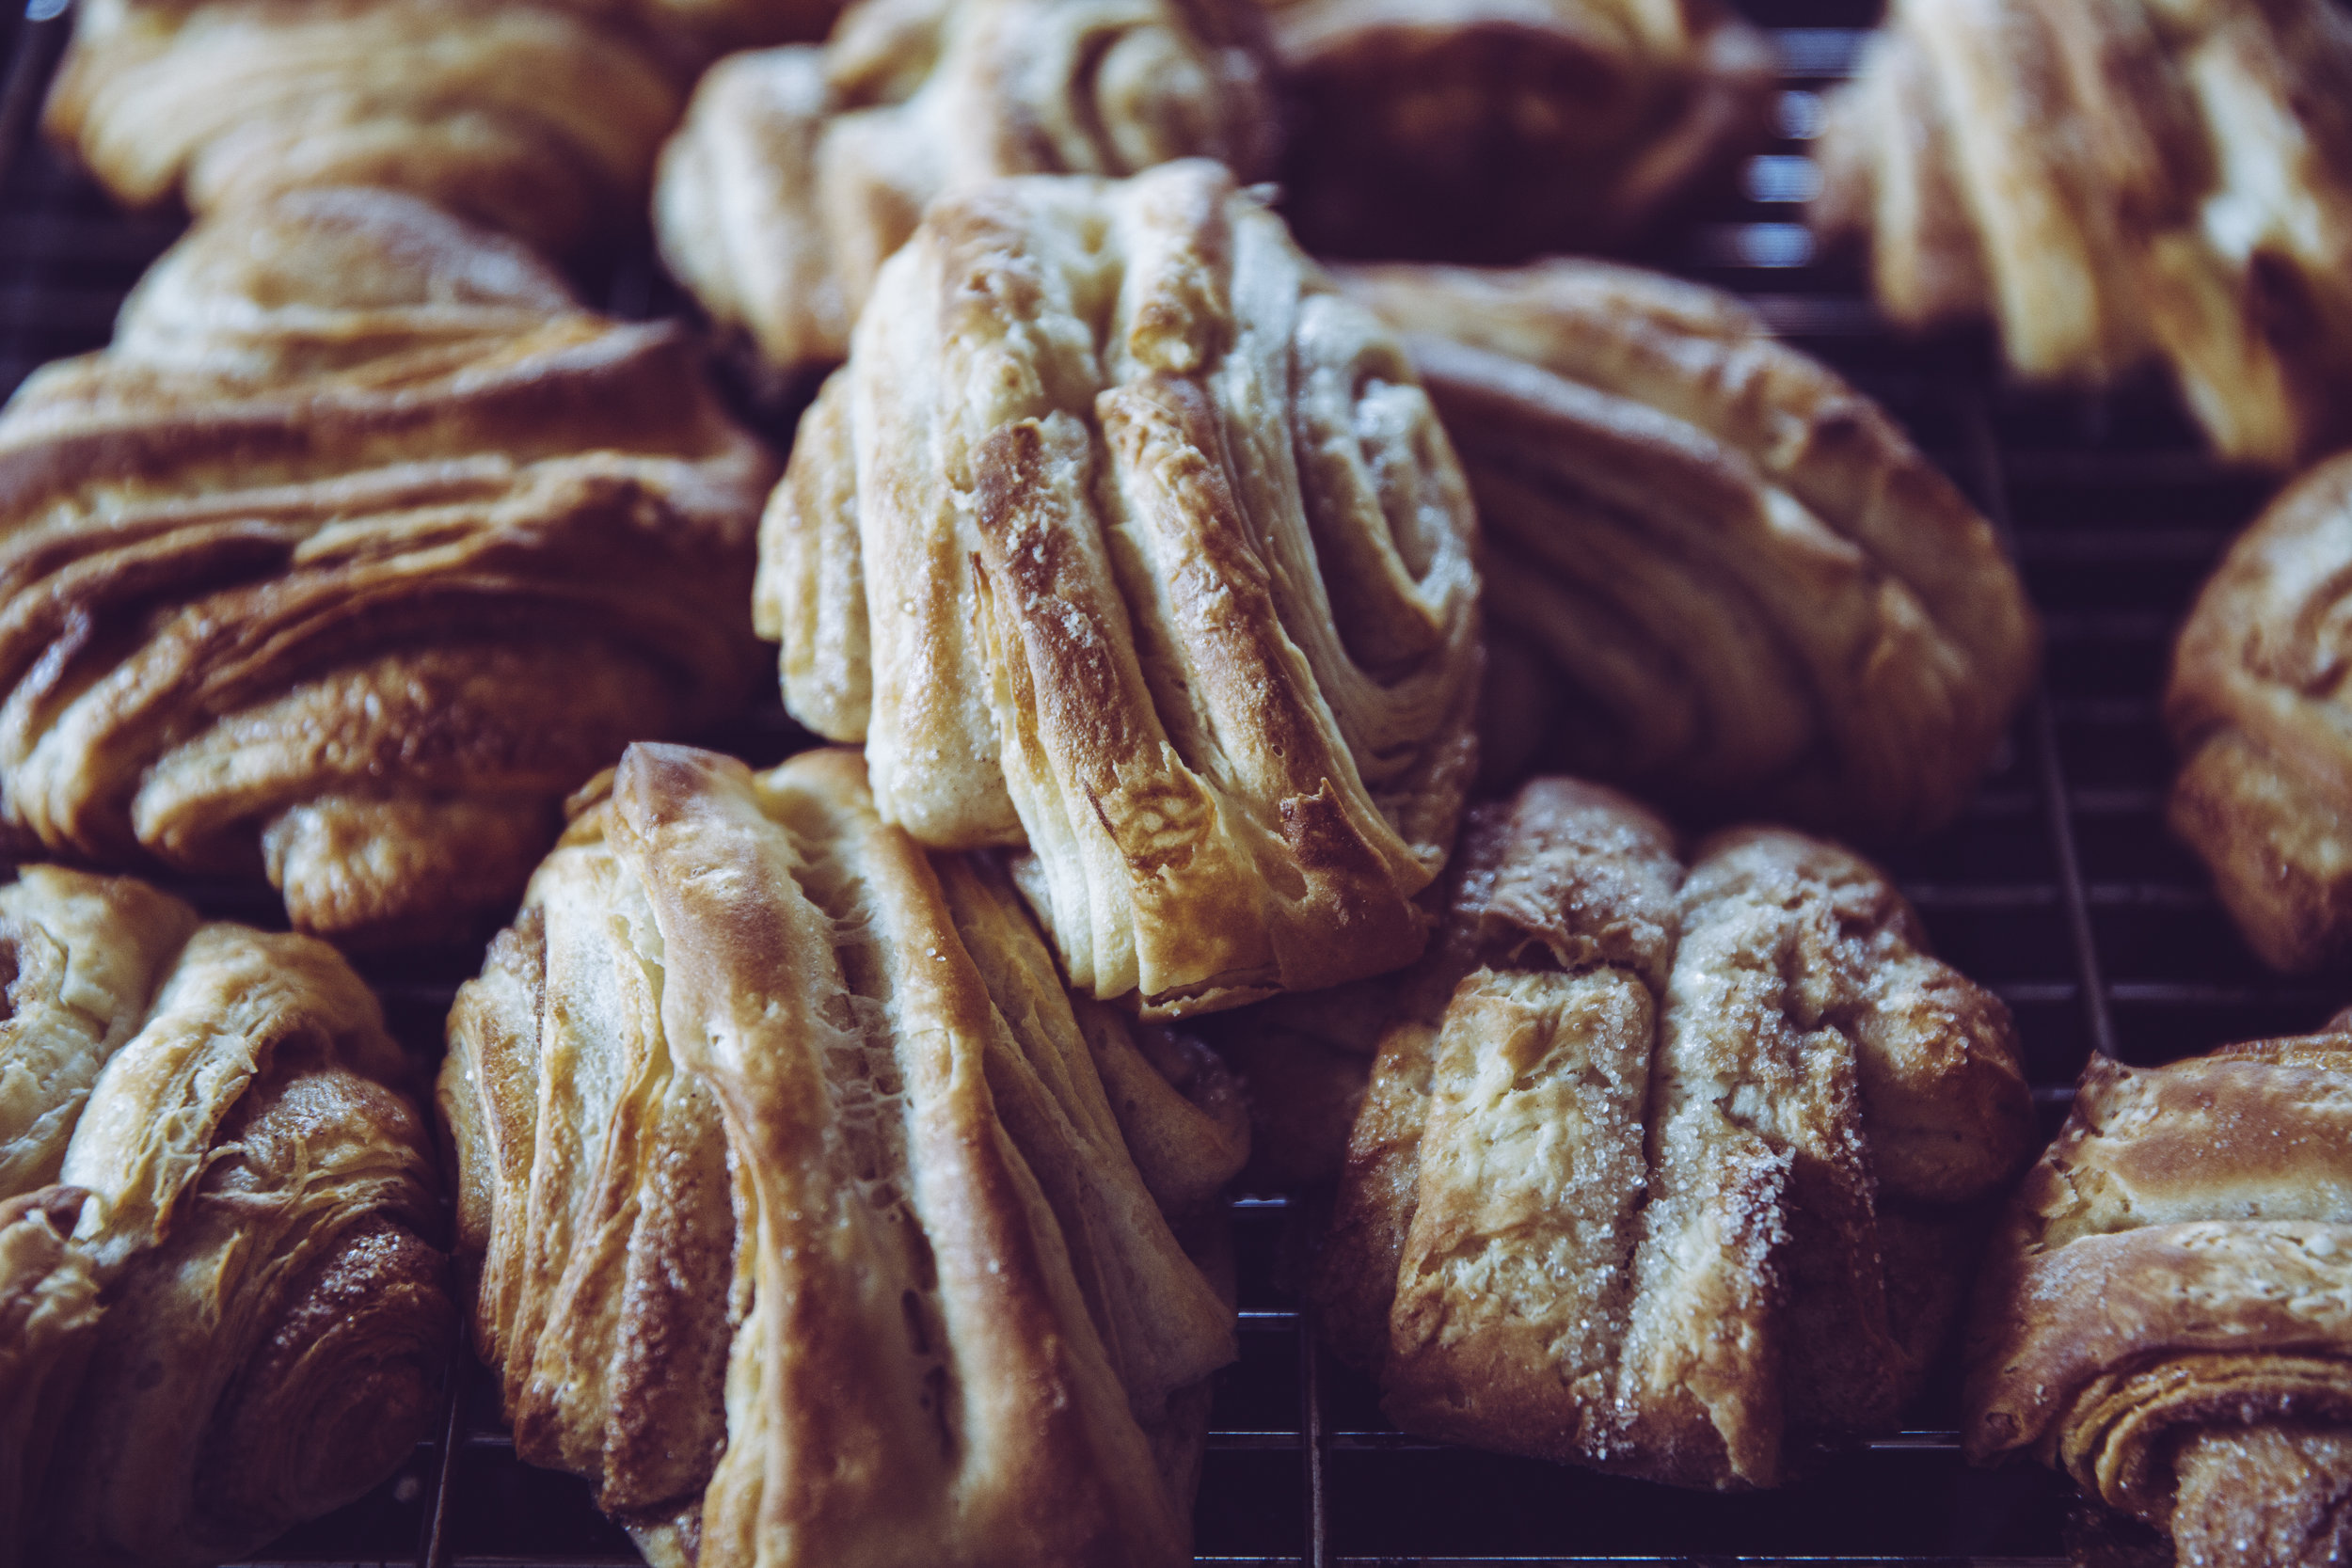 CLASSIC CROISSANT MADE WITH BUTTERY, LAYERED DOUGH - And much more delicious pastries